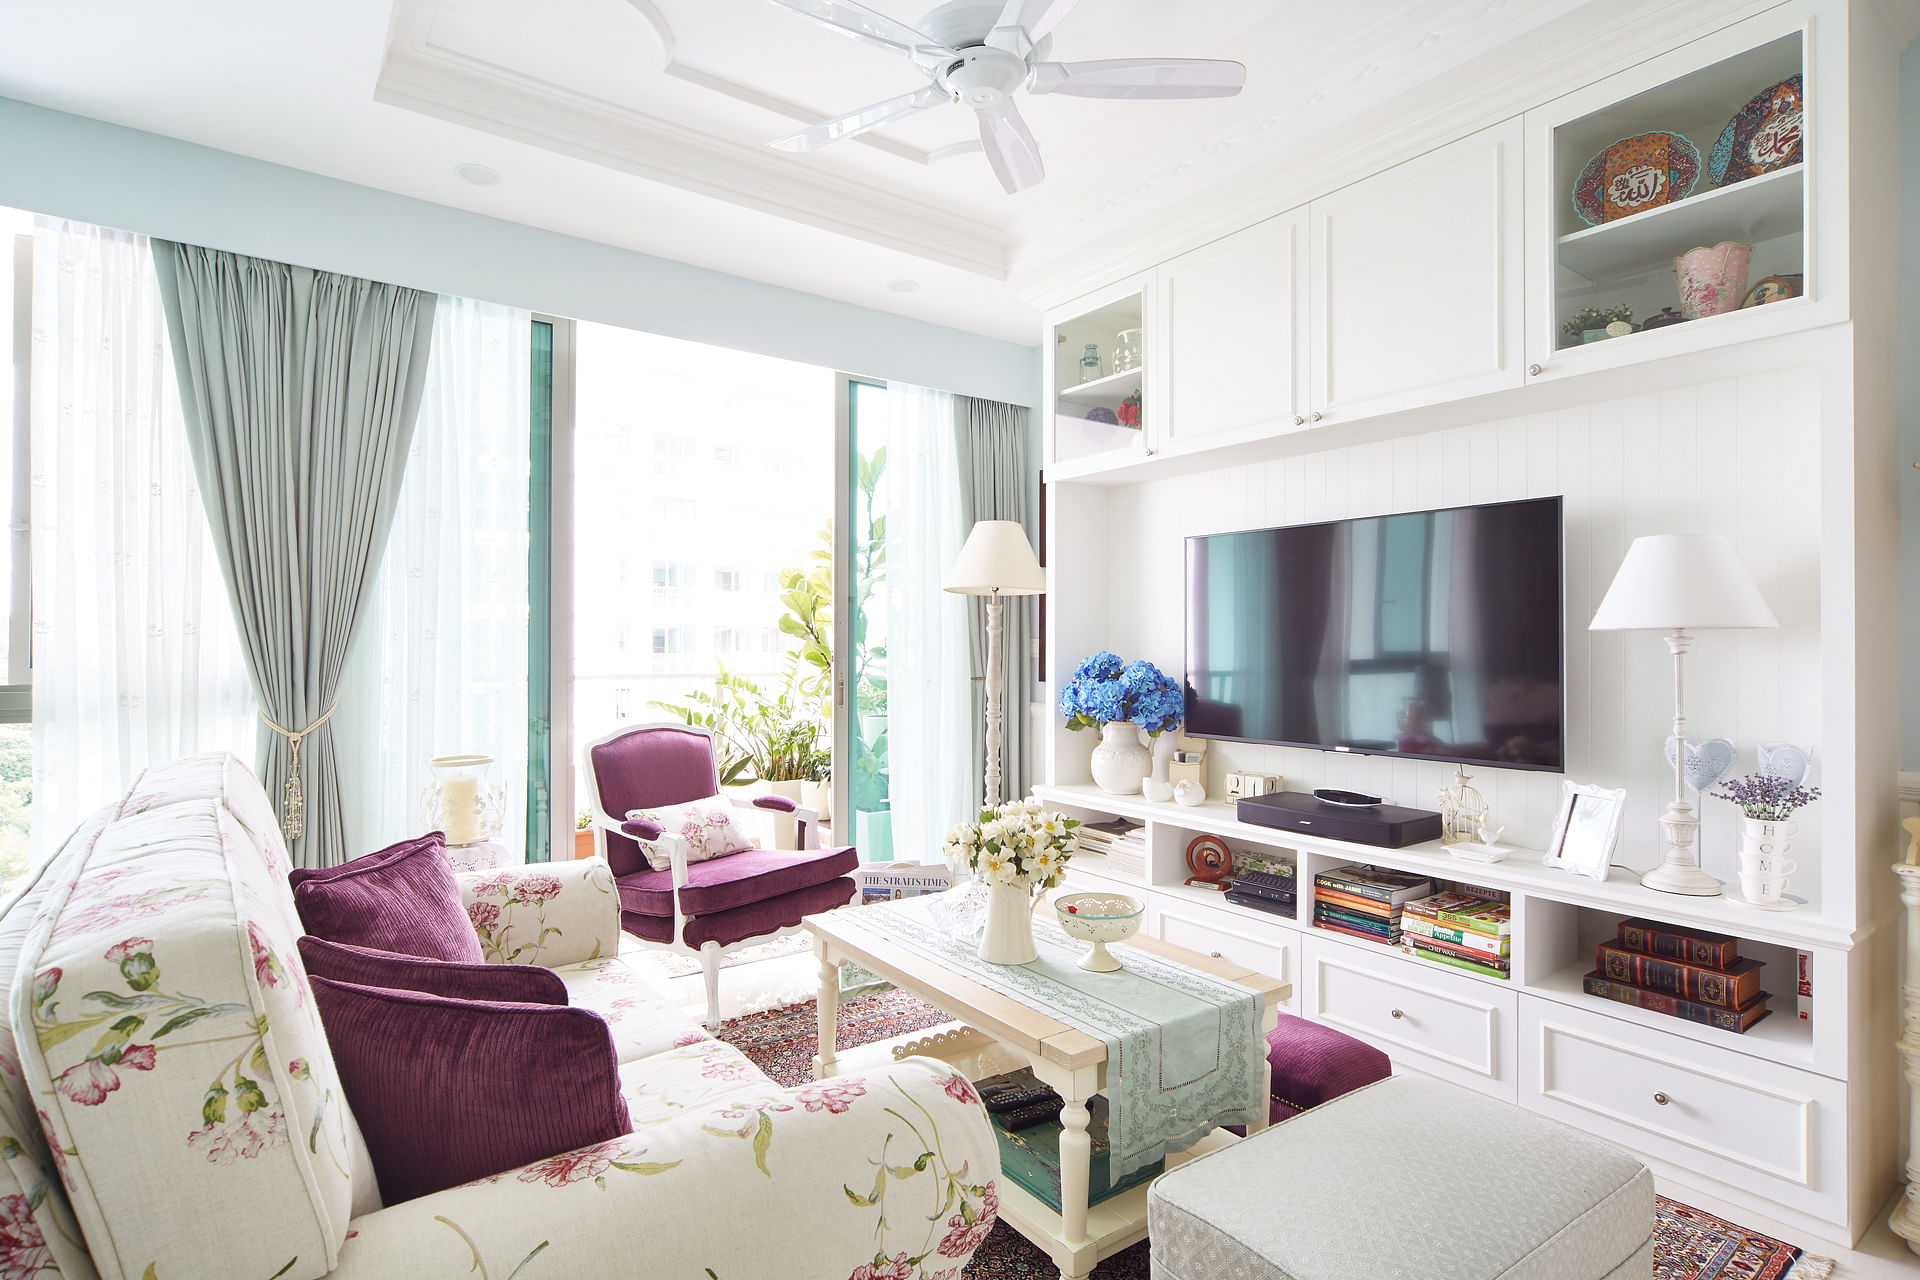 House Tour: Elegant country-style apartment in Pasir Ris | Home ...